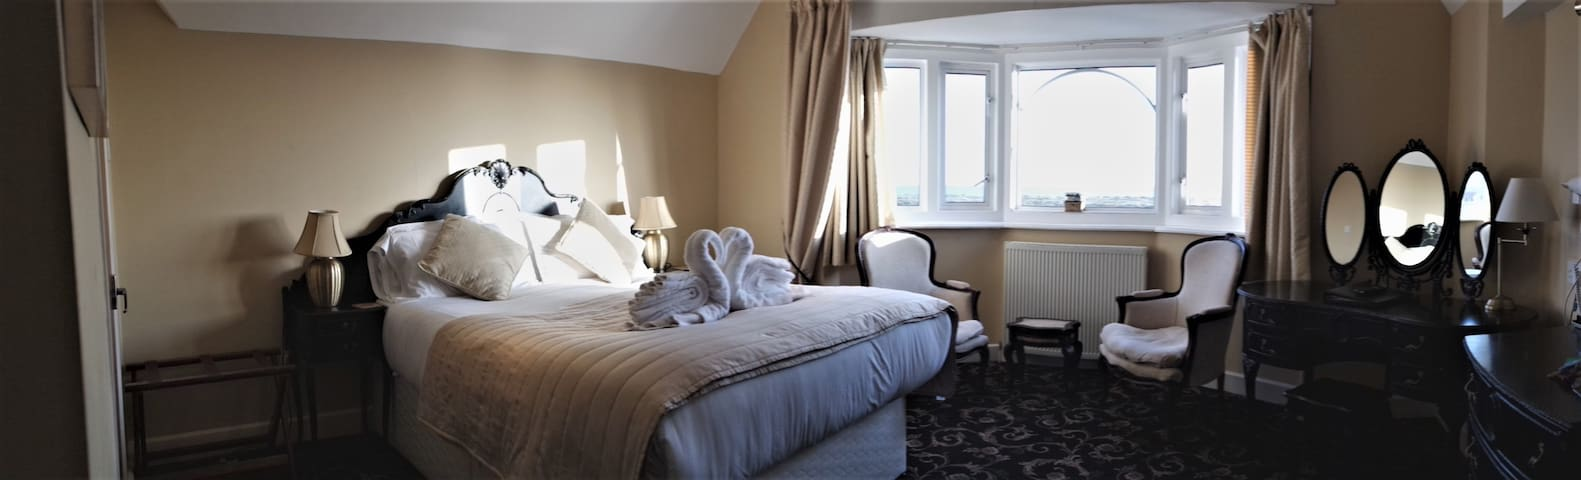 Gable End Hotel - Superior Double Room